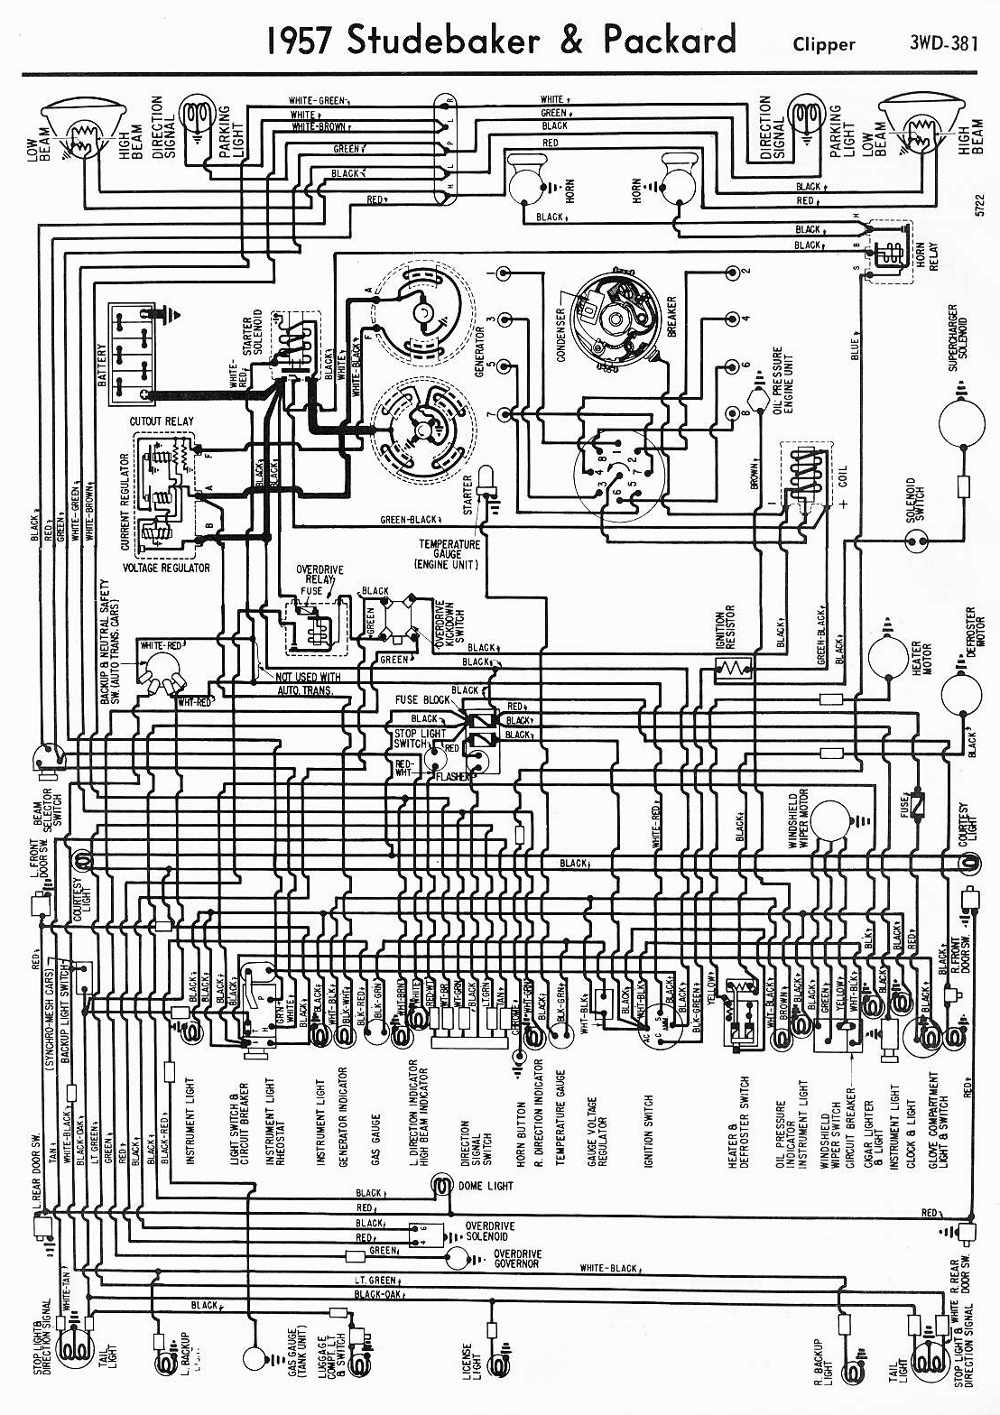 Wiring Diagrams 911: December 2011